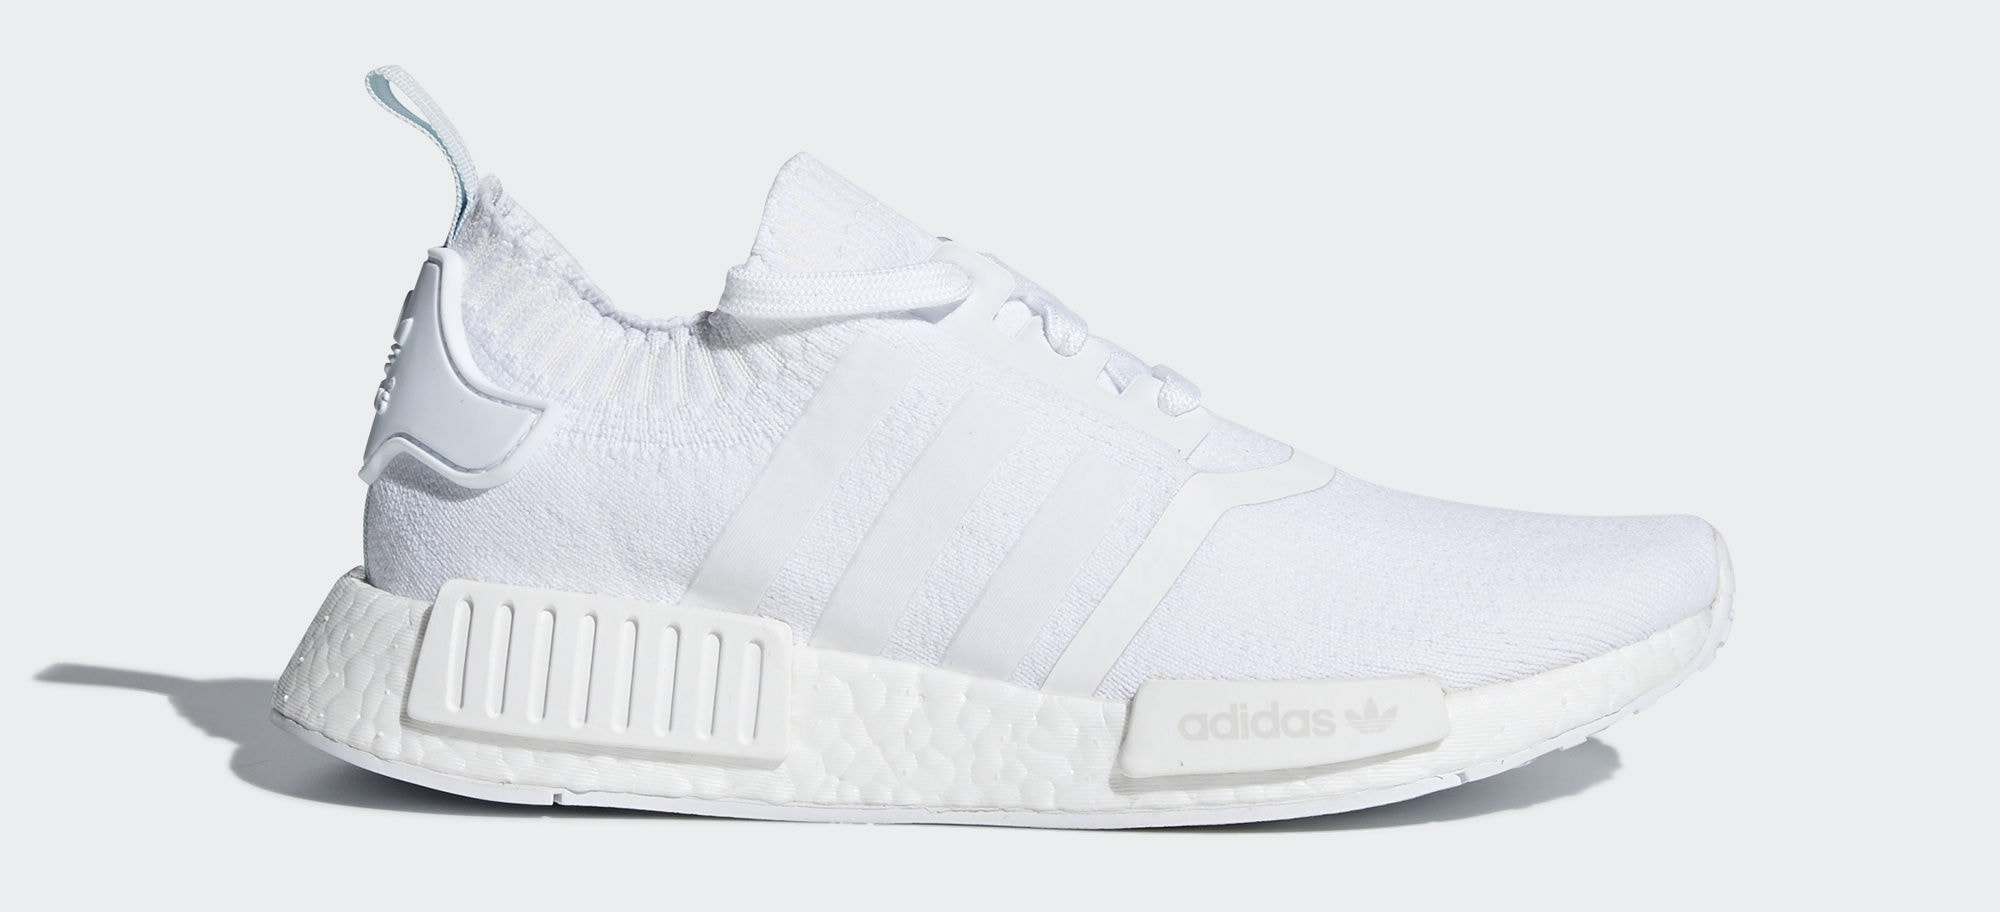 adidas nmd release 2018